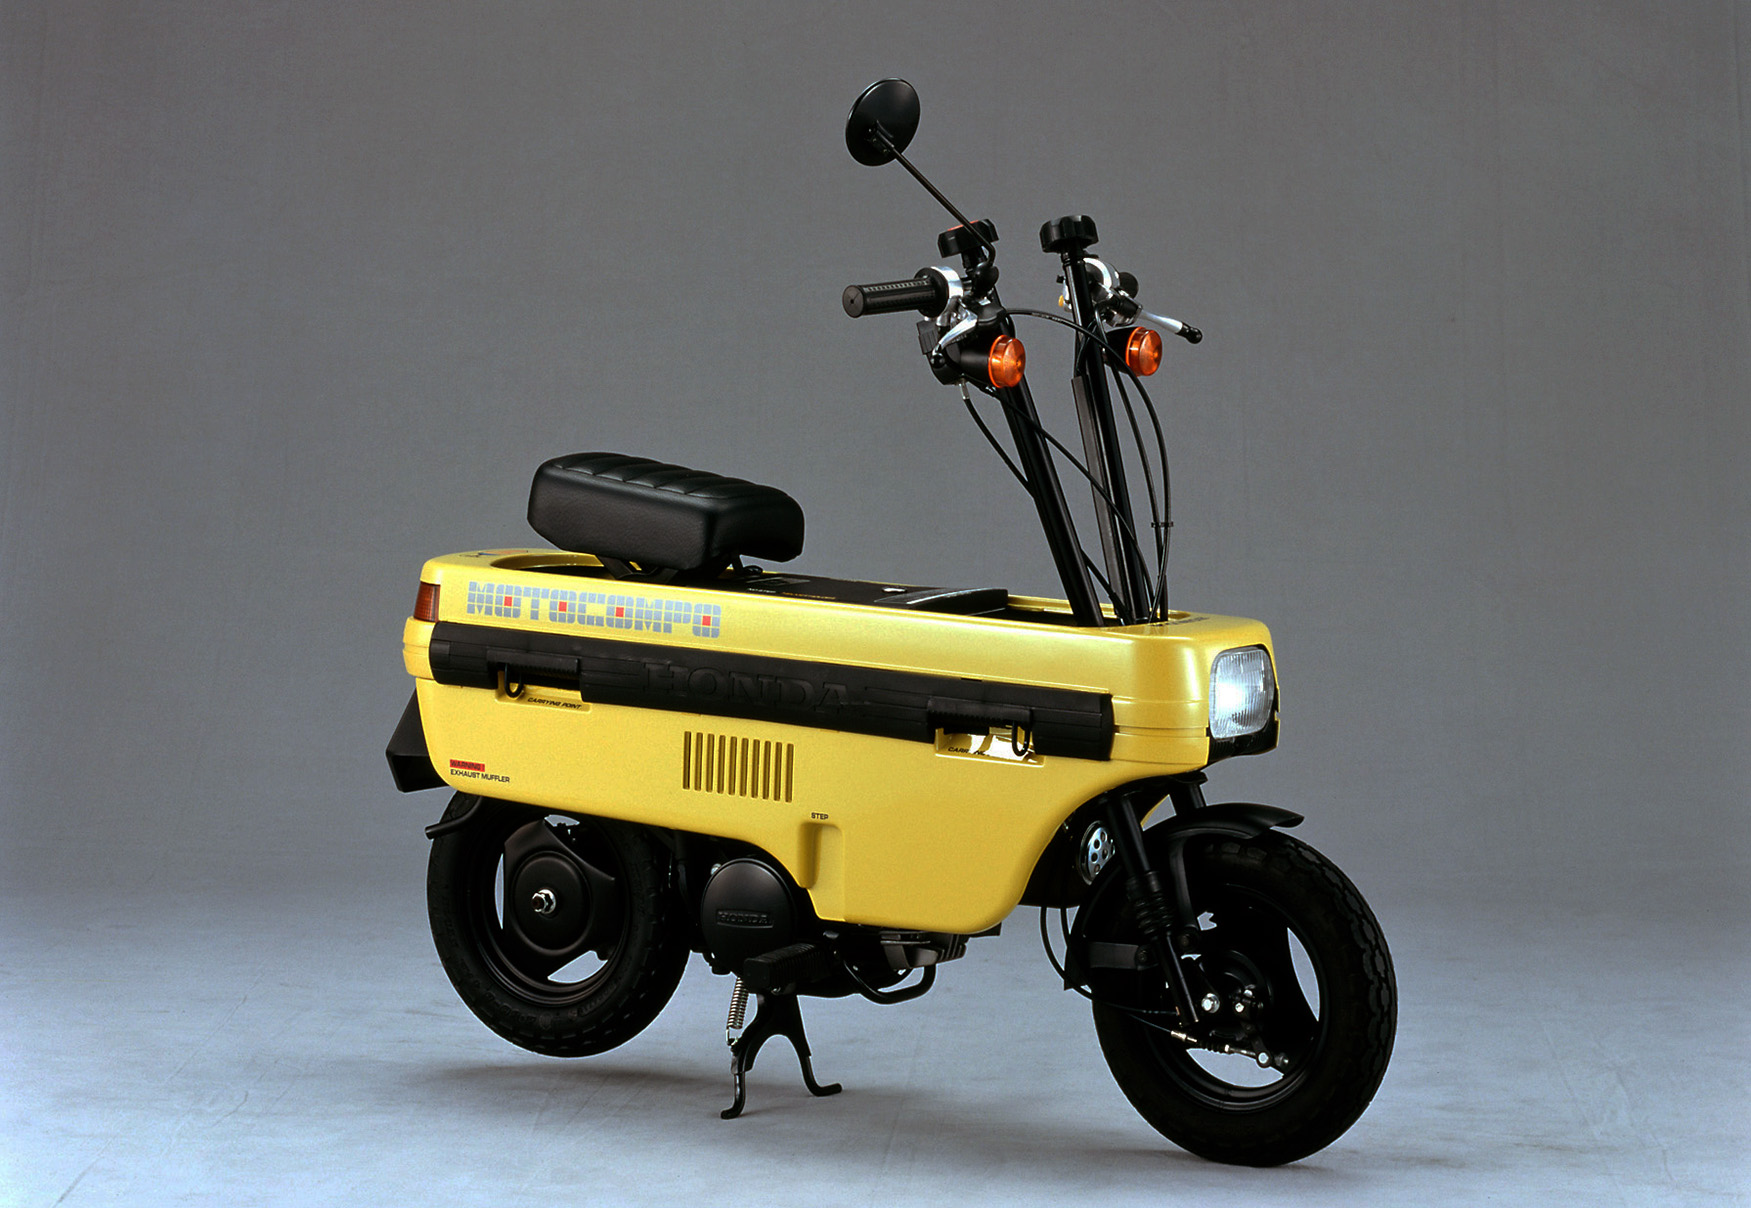 Motocompo bike yellow